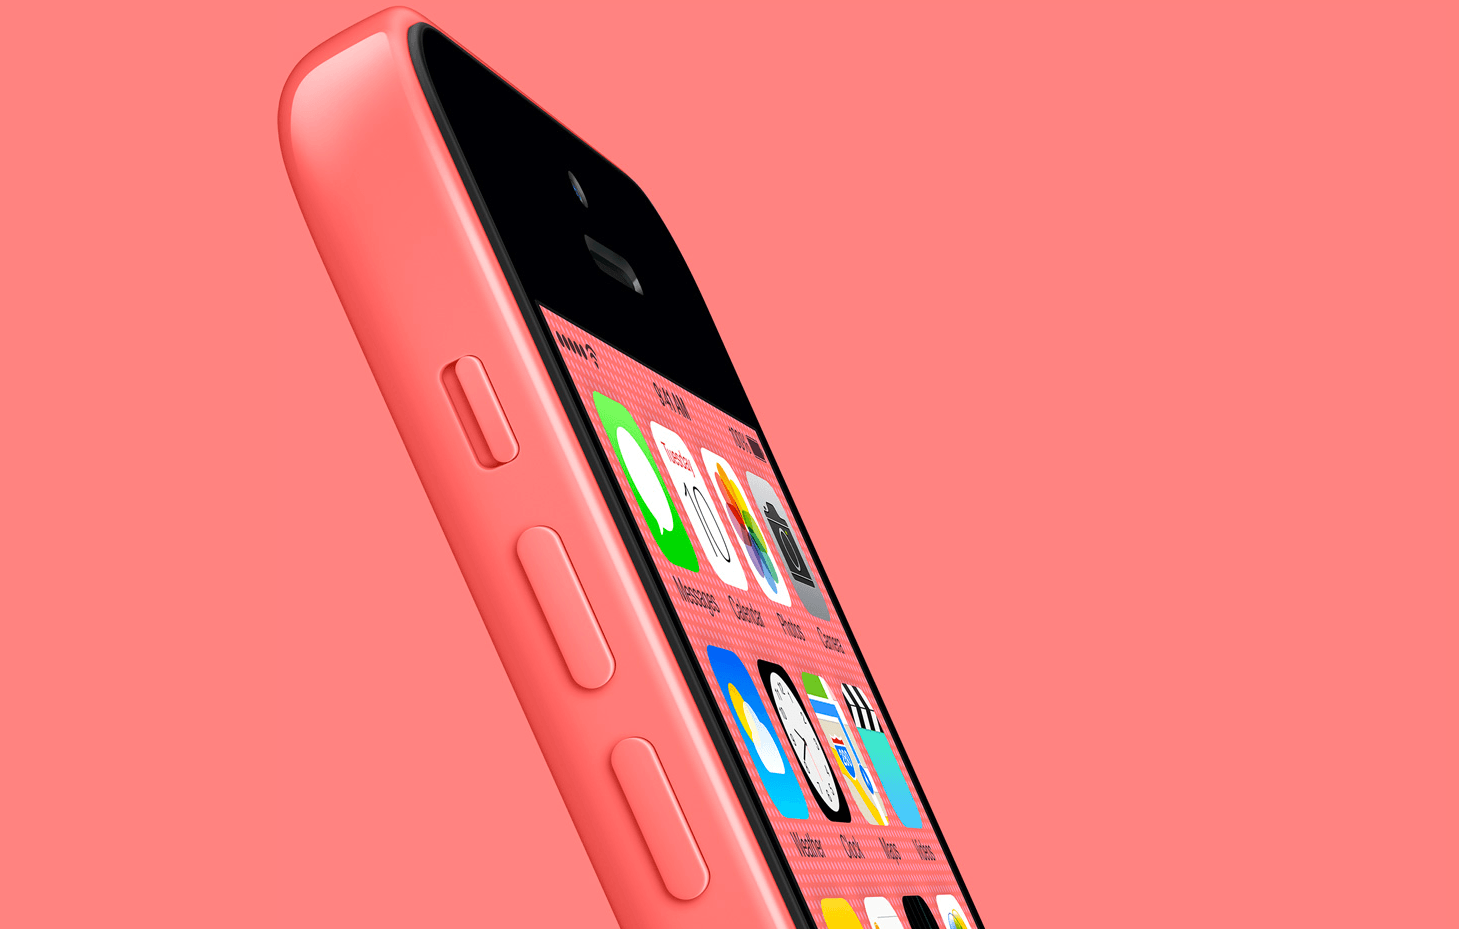 Iphone 5c wallpaper pink